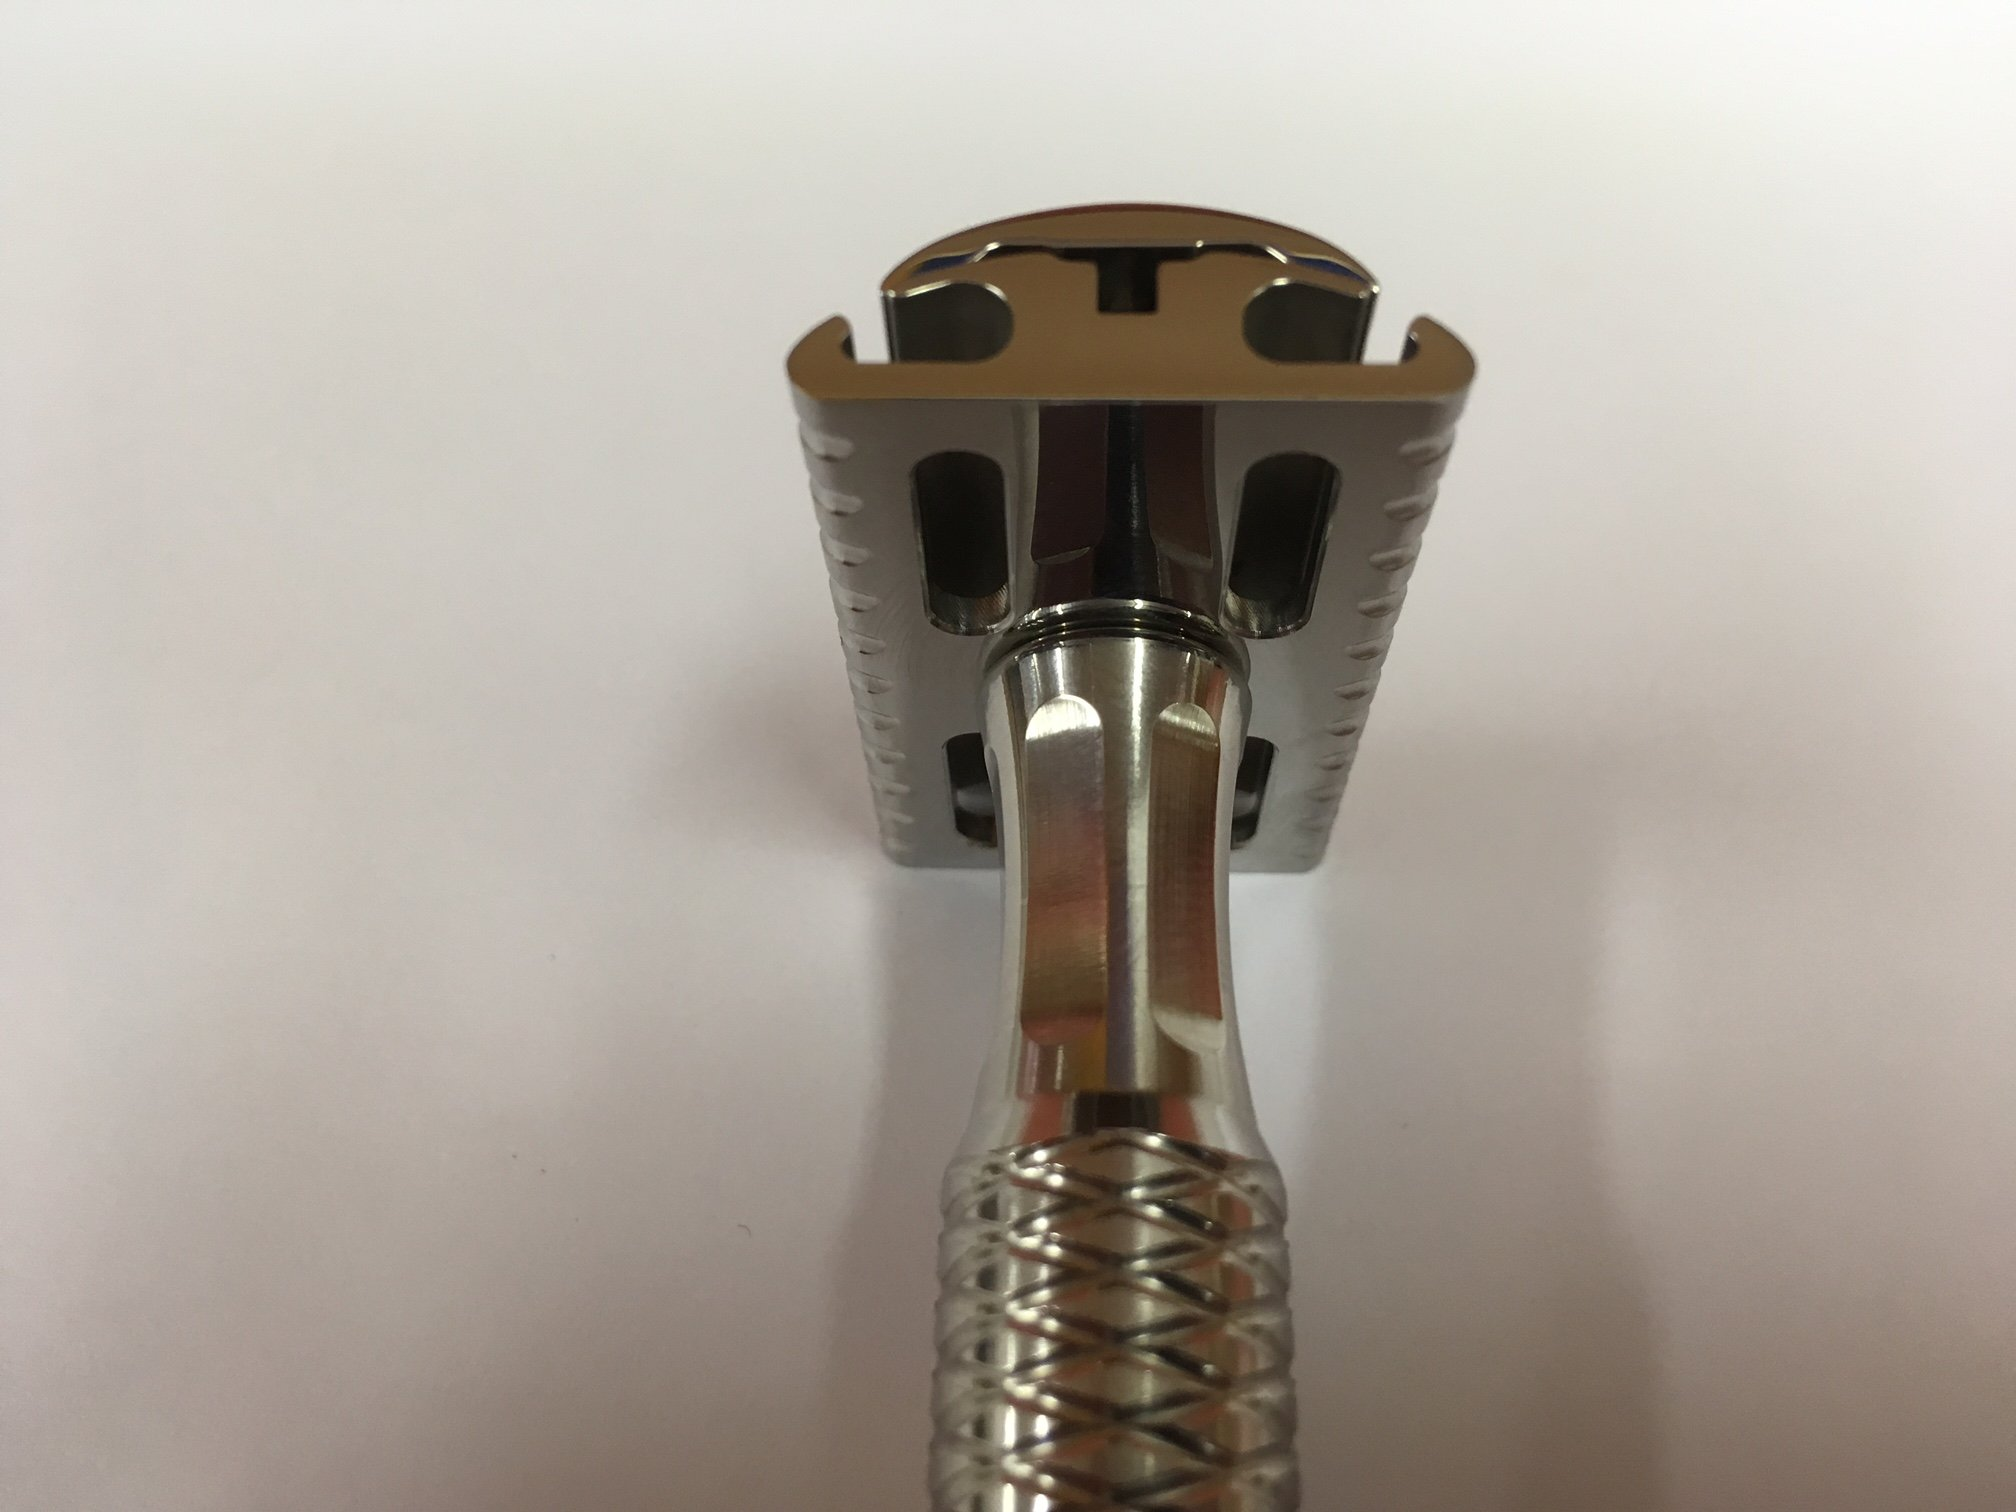 Stainless Steel Safety Razor with Stand by Timeless Razor